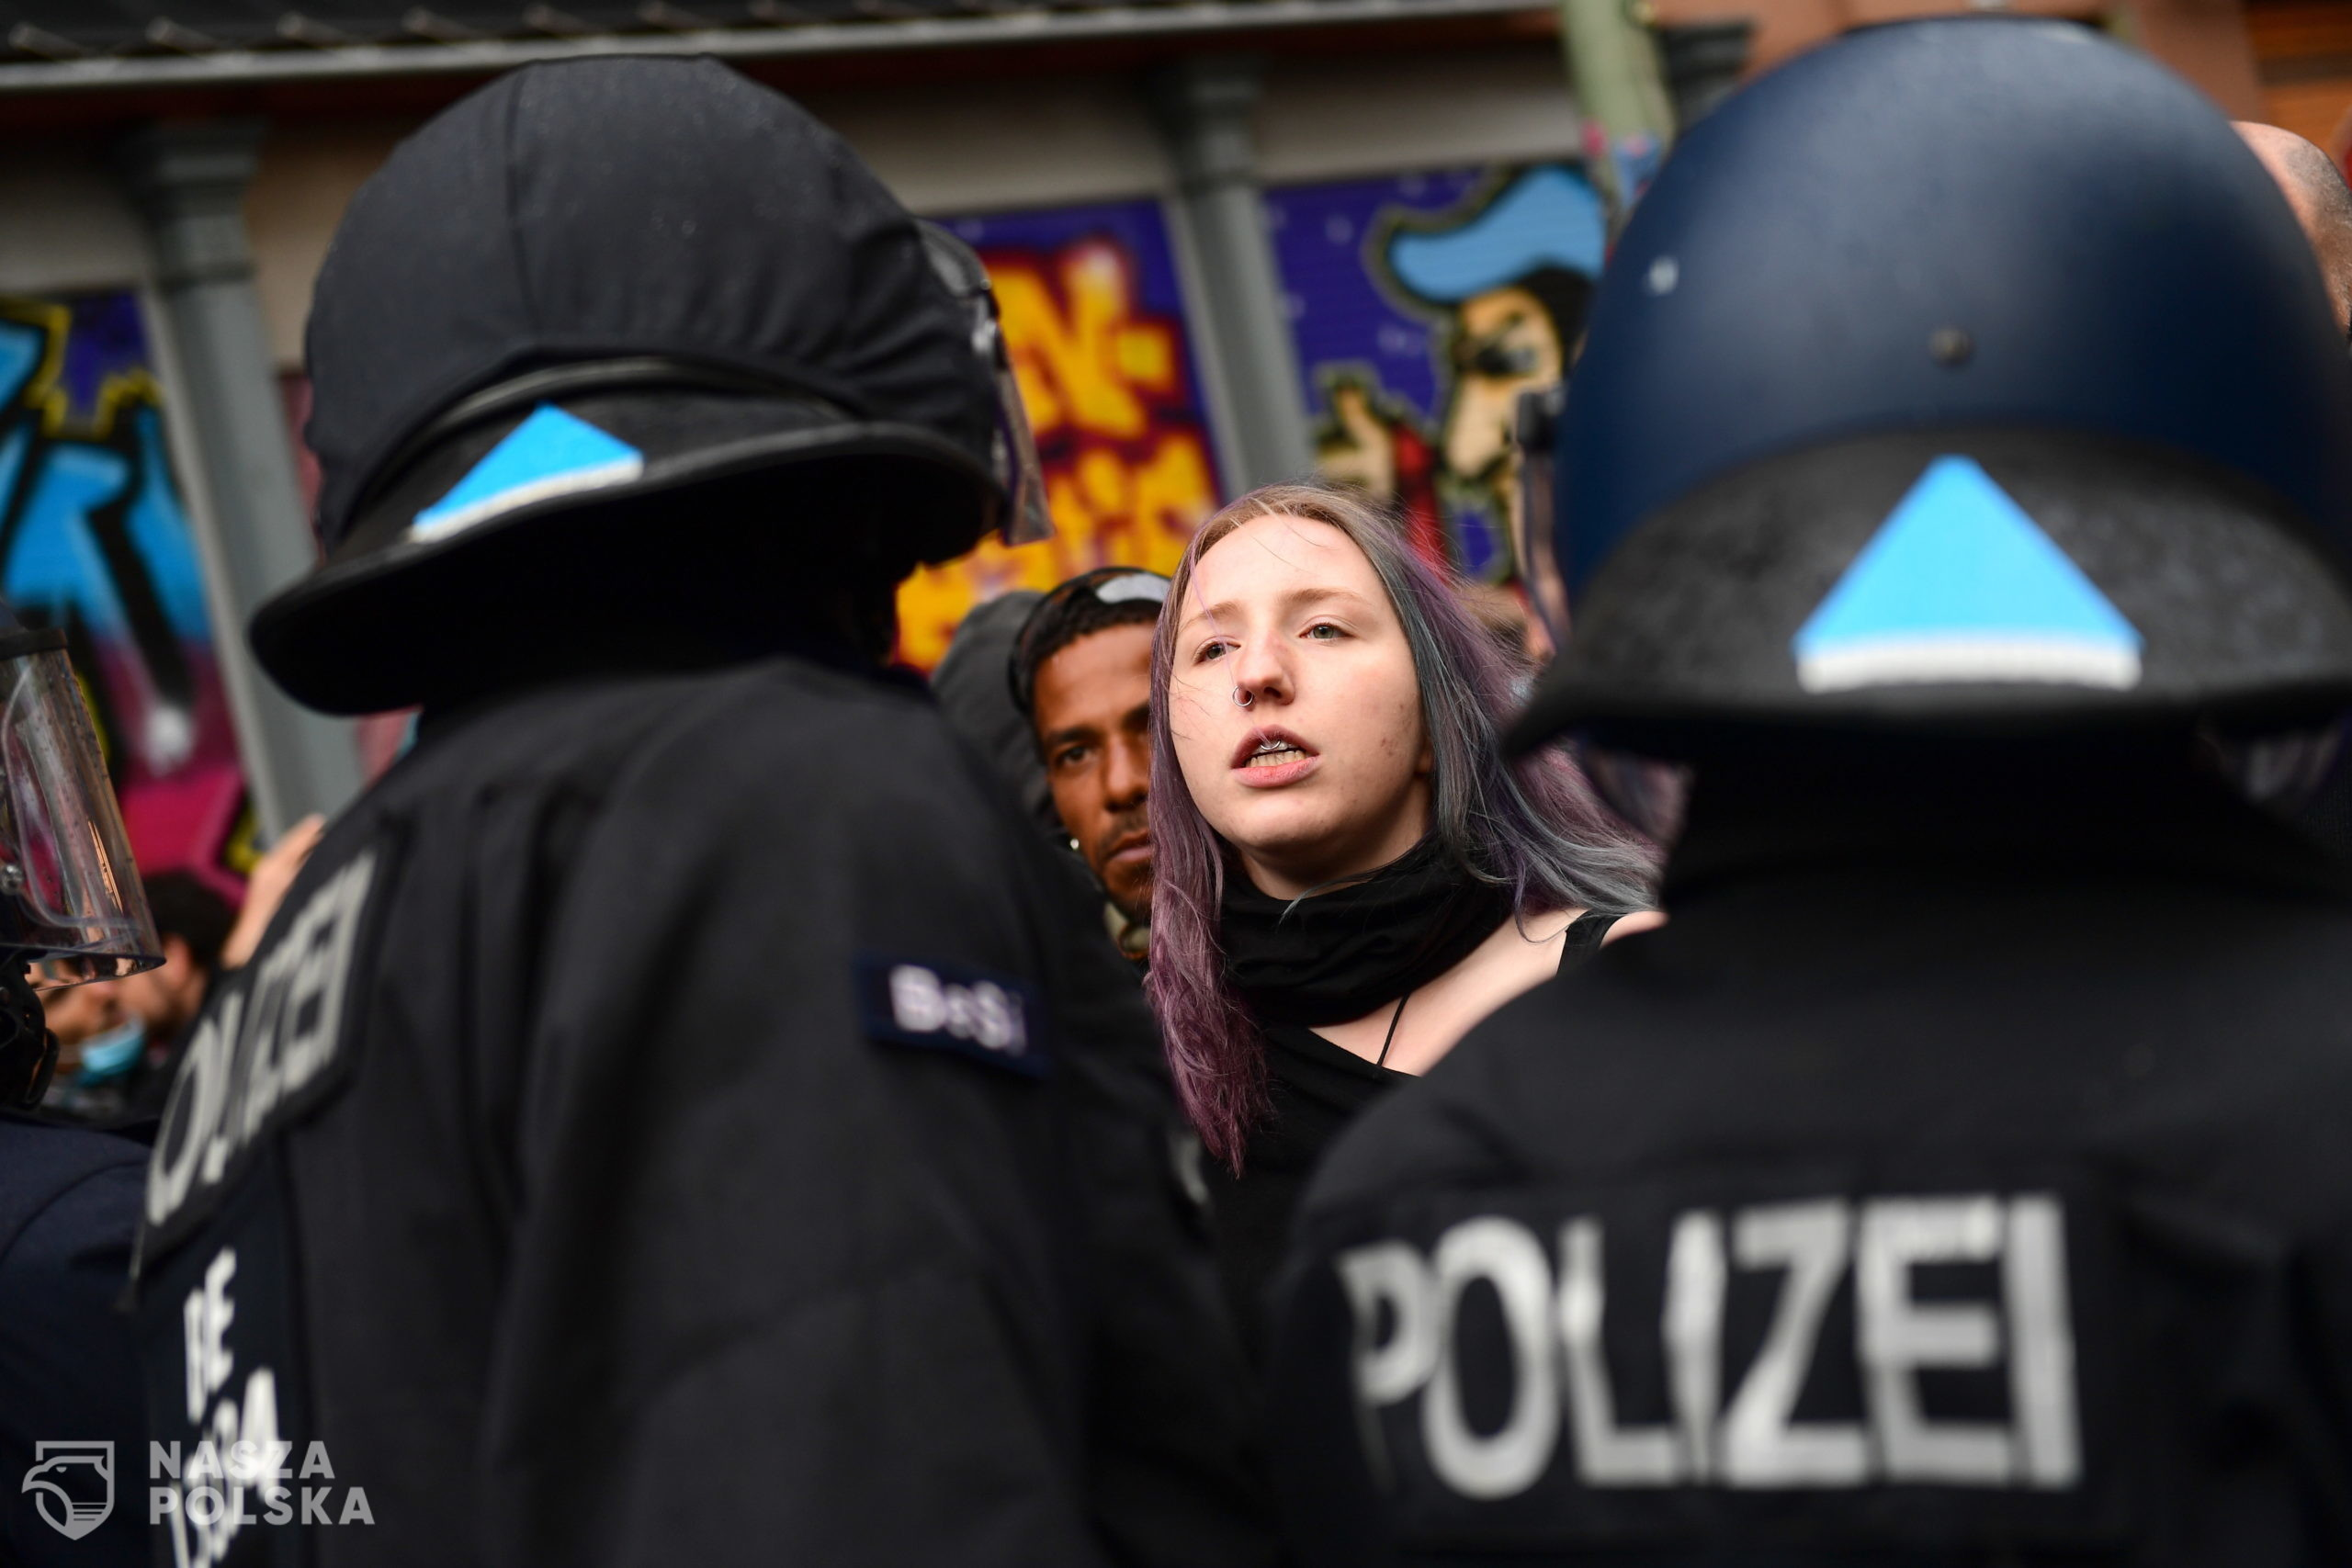 epa08396698 Police argue with a woman during a protest on May Day in the district Kreuzberg in Berlin, Germany, 01 May 2020. Labour Day, or May Day, is observed all over the world on the first day of May to celebrate the economic and social achievements of workers and fight for labourers rights. This year, May Day takes place under the influence of the pandemic crisis of the SARS-CoV-2 coronavirus which causes the Covid-19 disease.  EPA/FILIP SINGER  Dostawca: PAP/EPA.